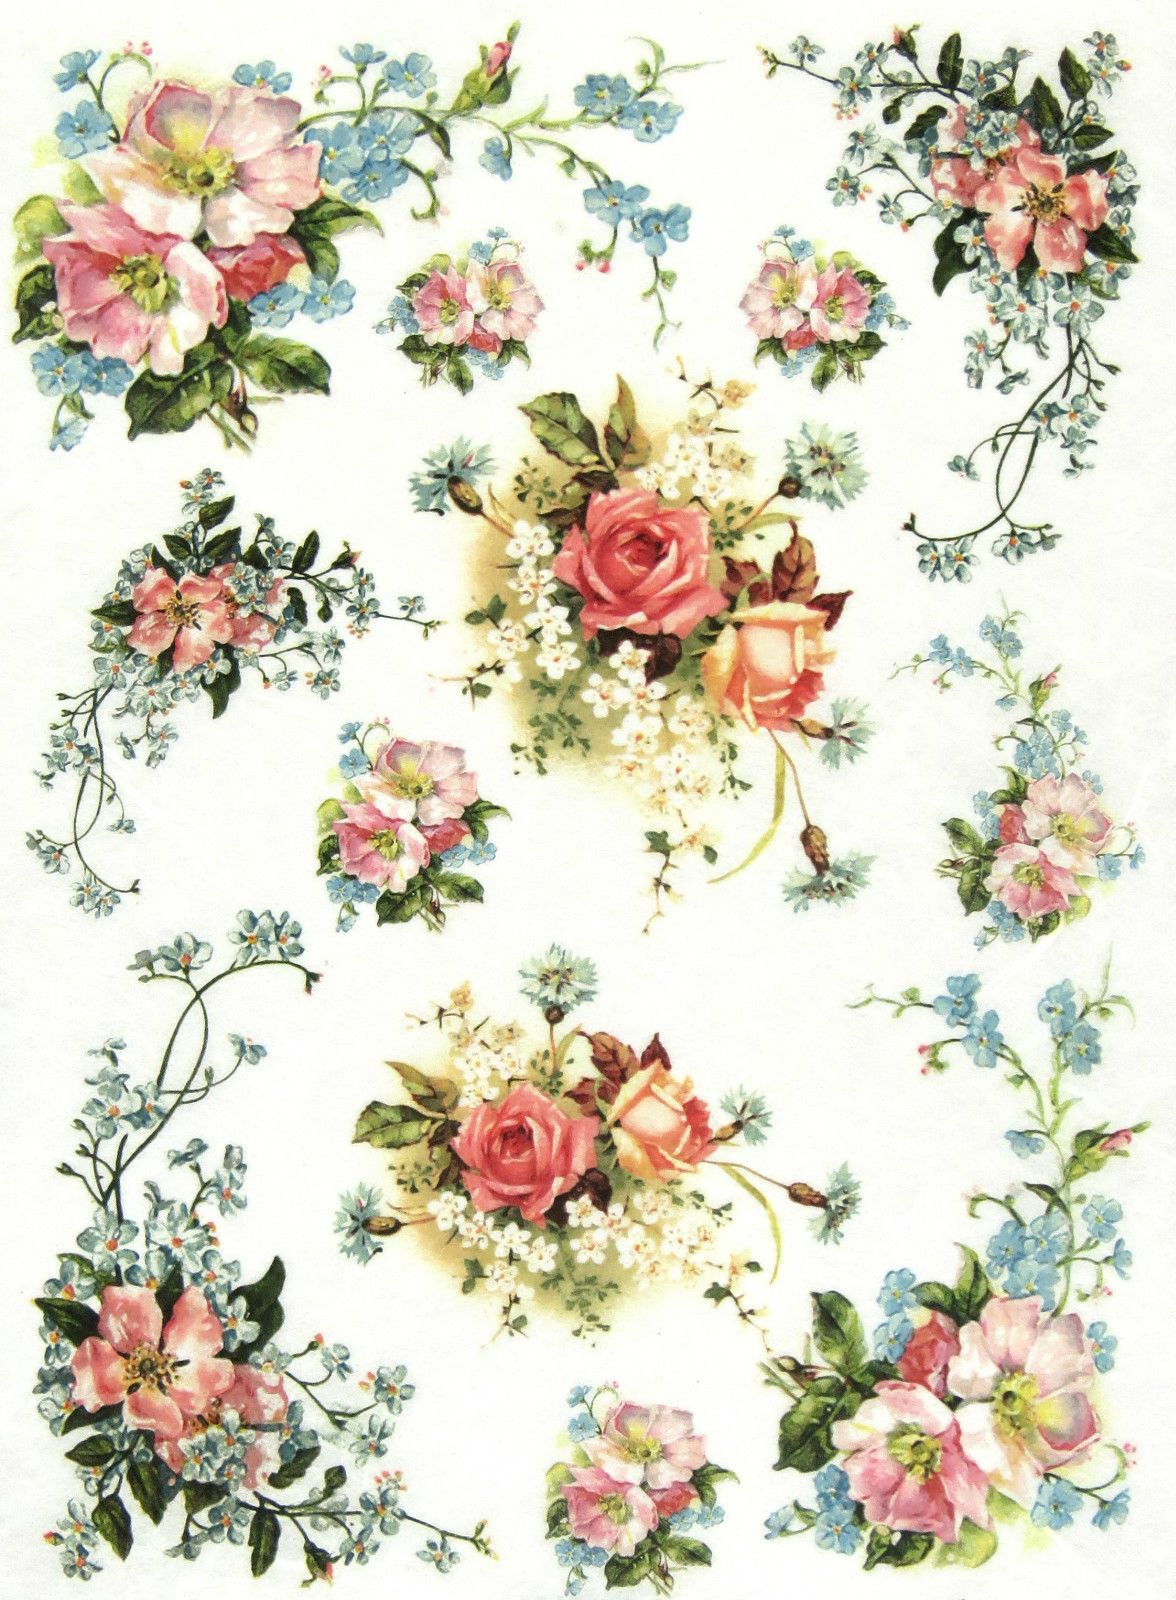 Rice Paper for Decoupage Decopatch Scrapbook Craft Sheet Vintage Petit Bouquet